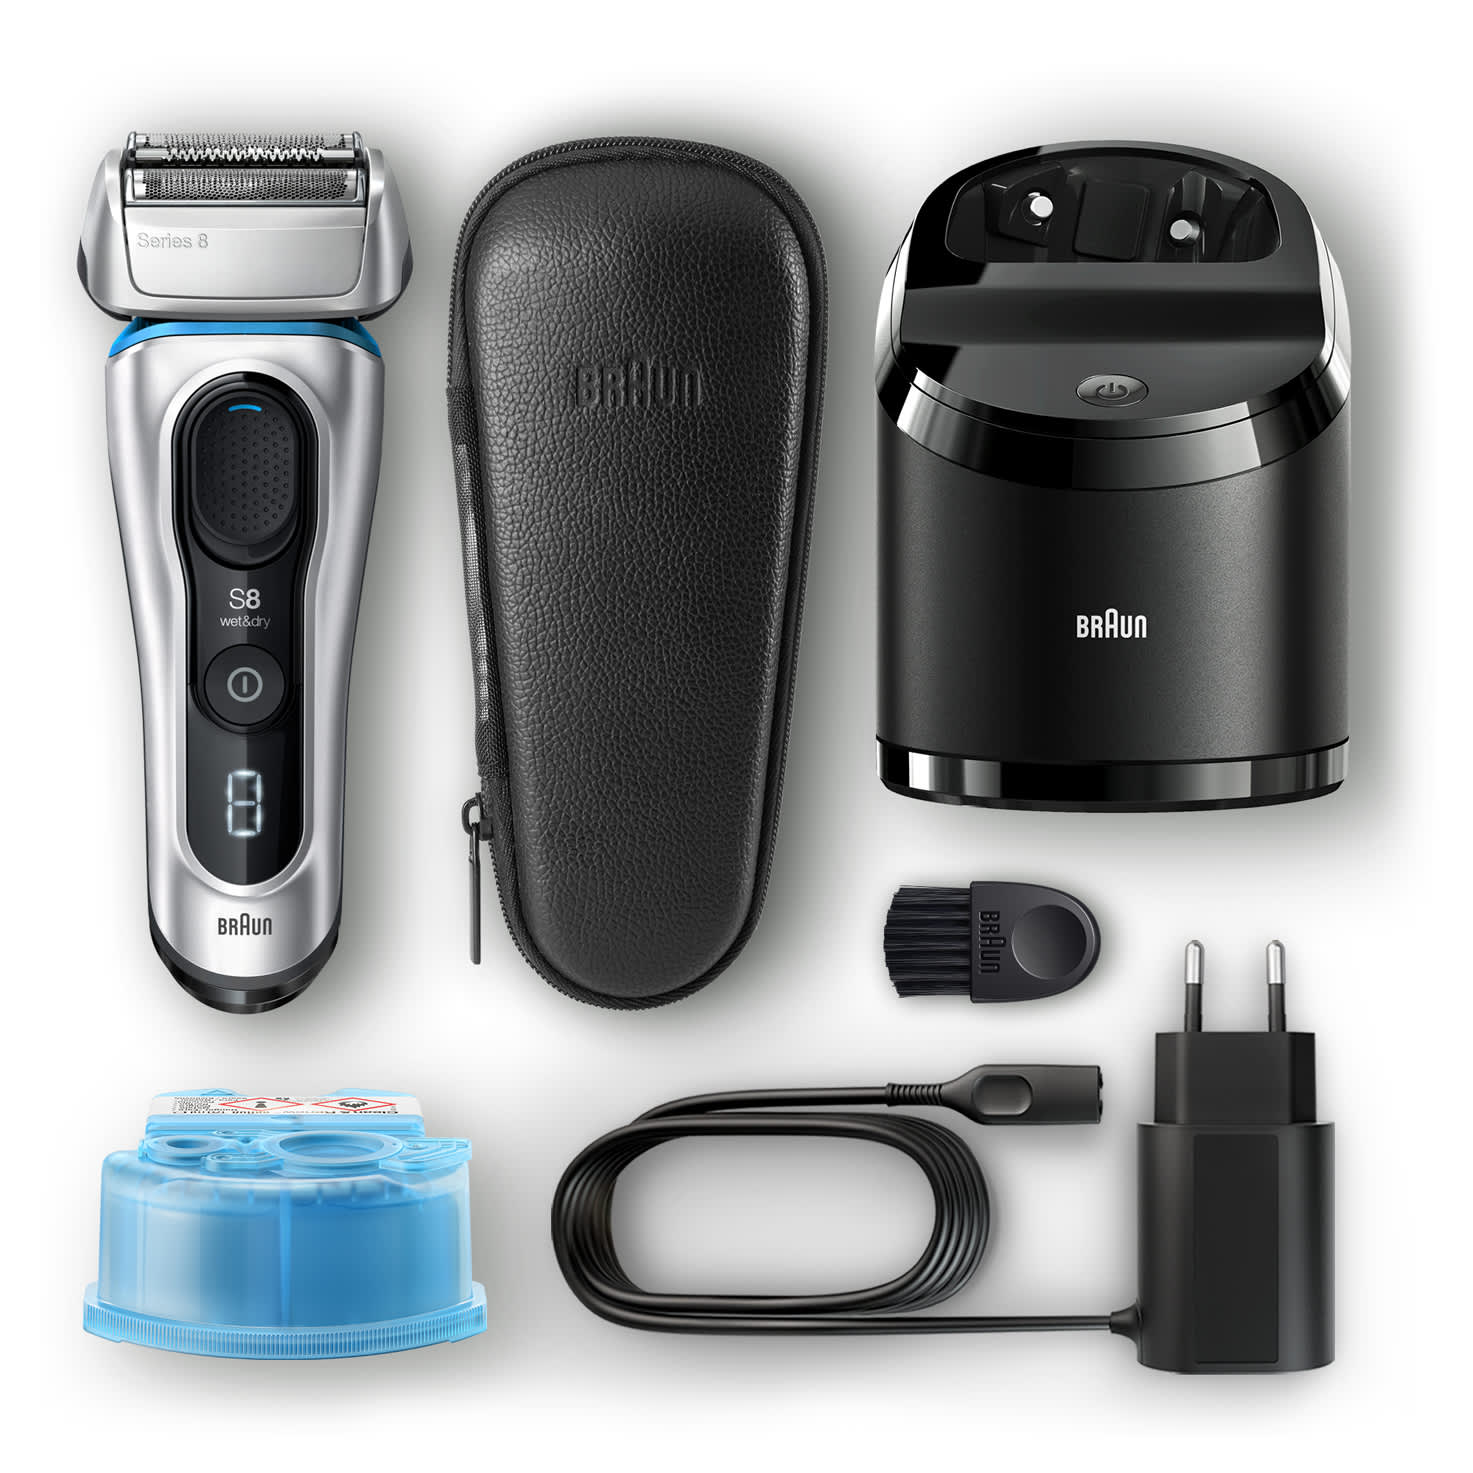 Series 8 8391cc shaver - What´s in the box